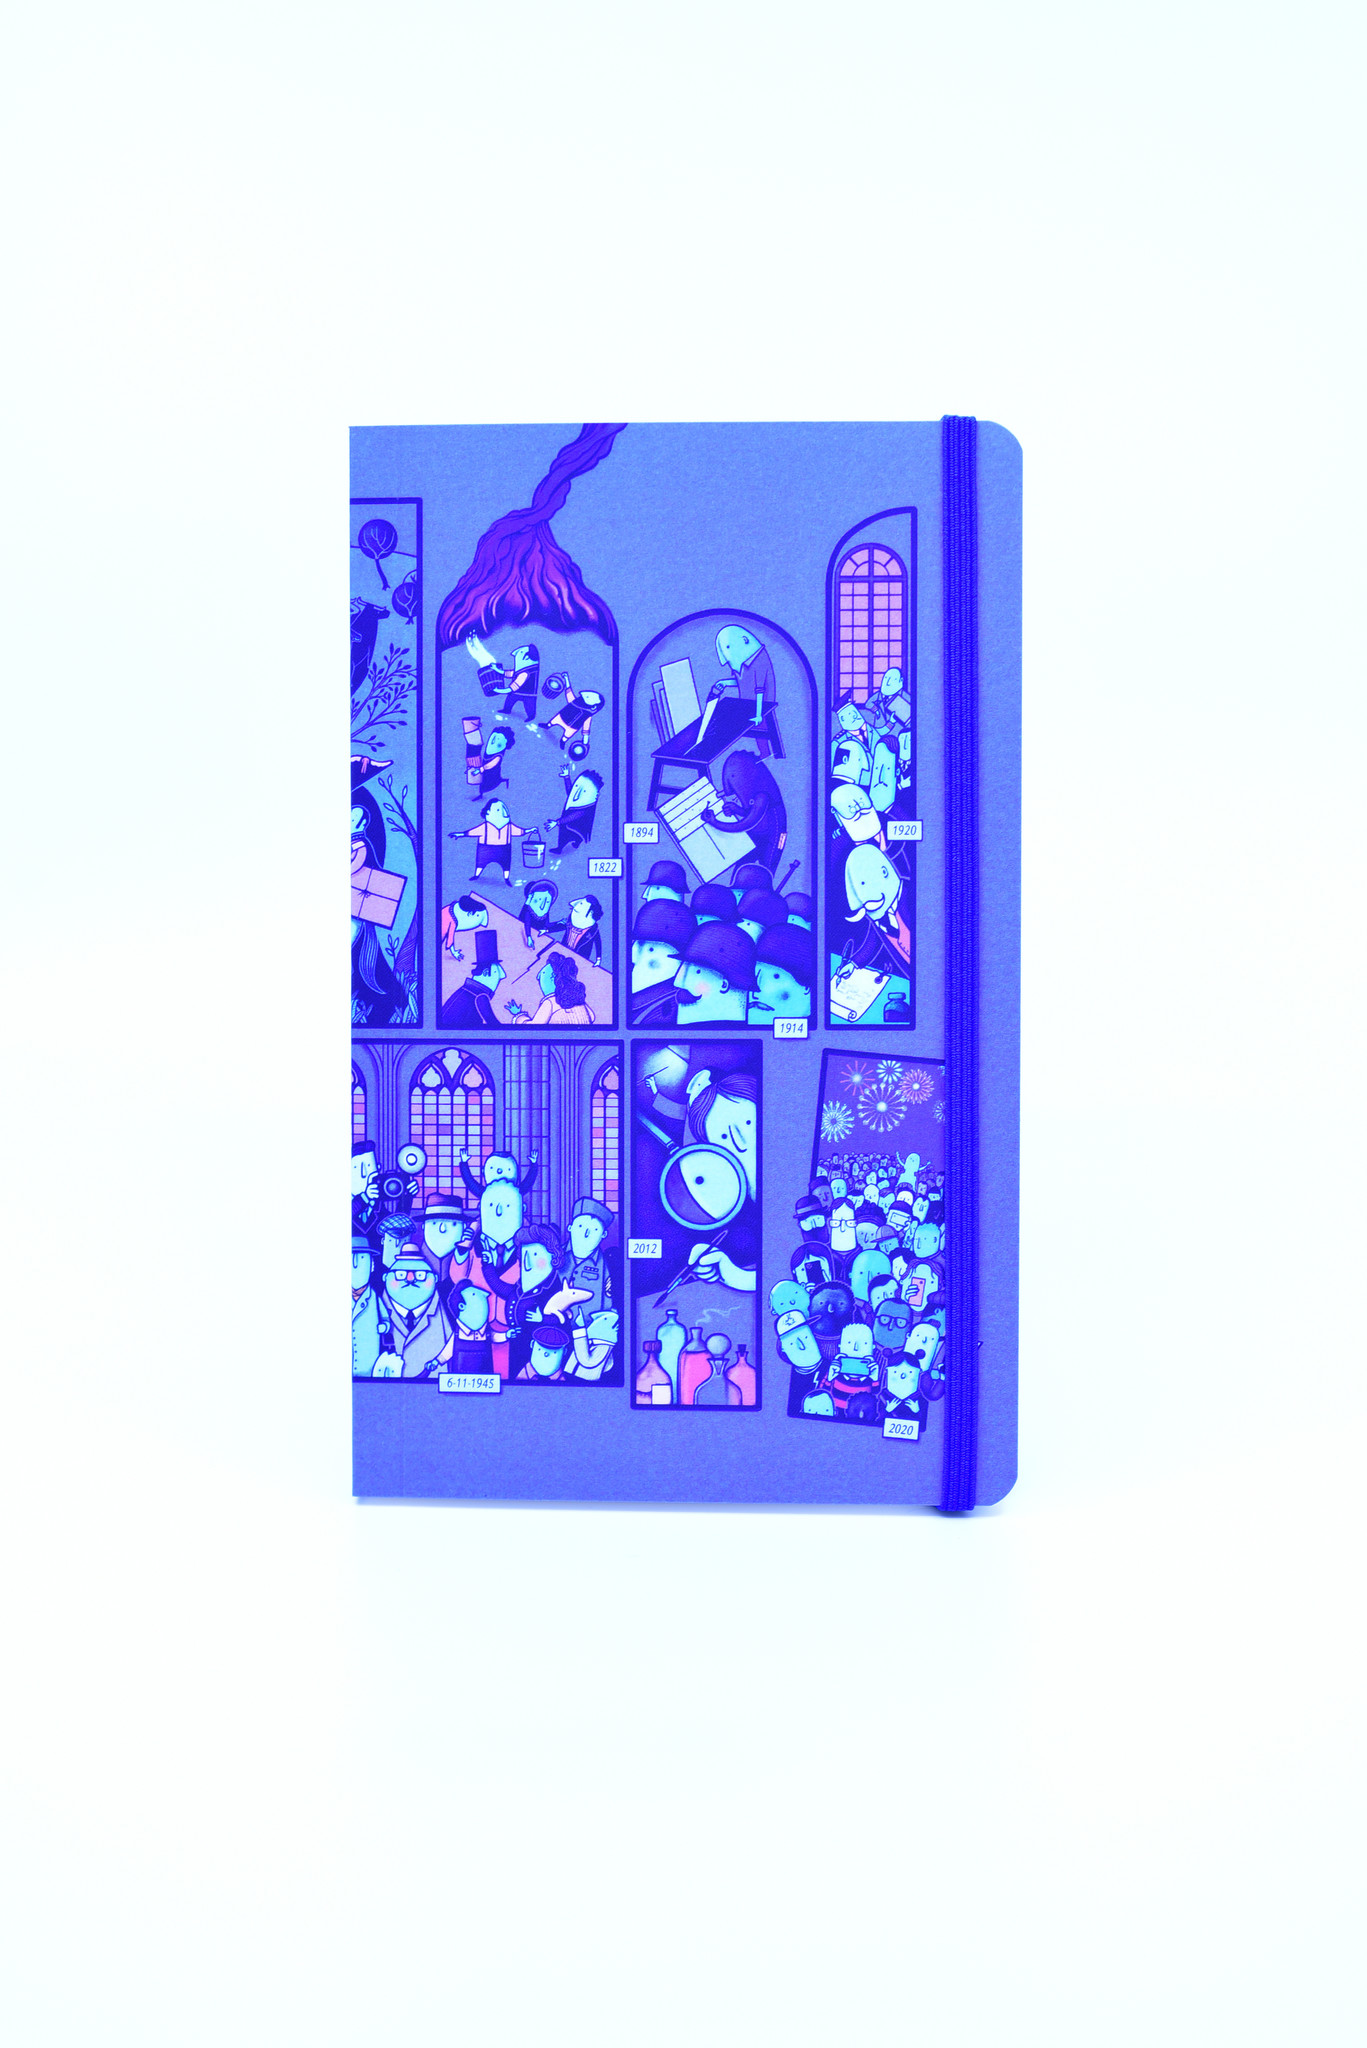 Peter Goes  Illustrated notebook with illustration A6 size - Peter Goes